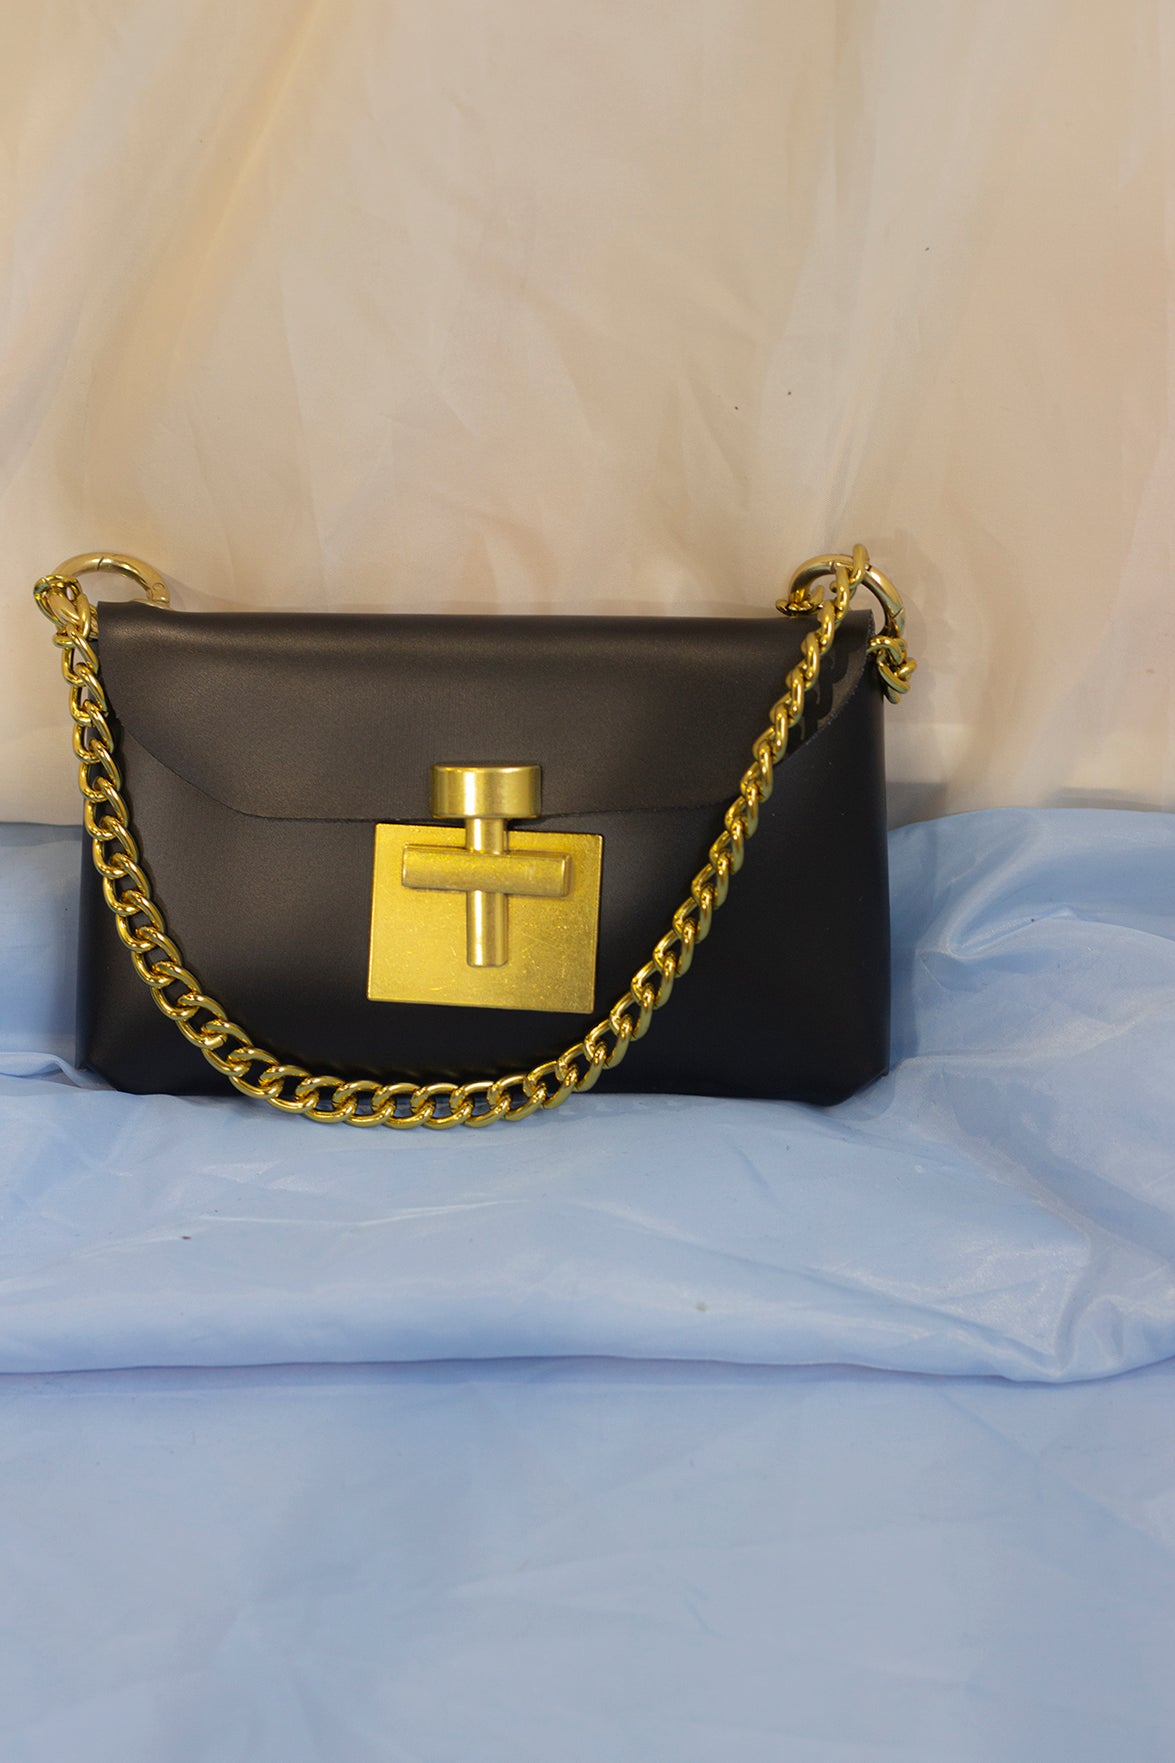 Black Micro Bag with Matte Gold Chain and Buckle - Sugar + Style